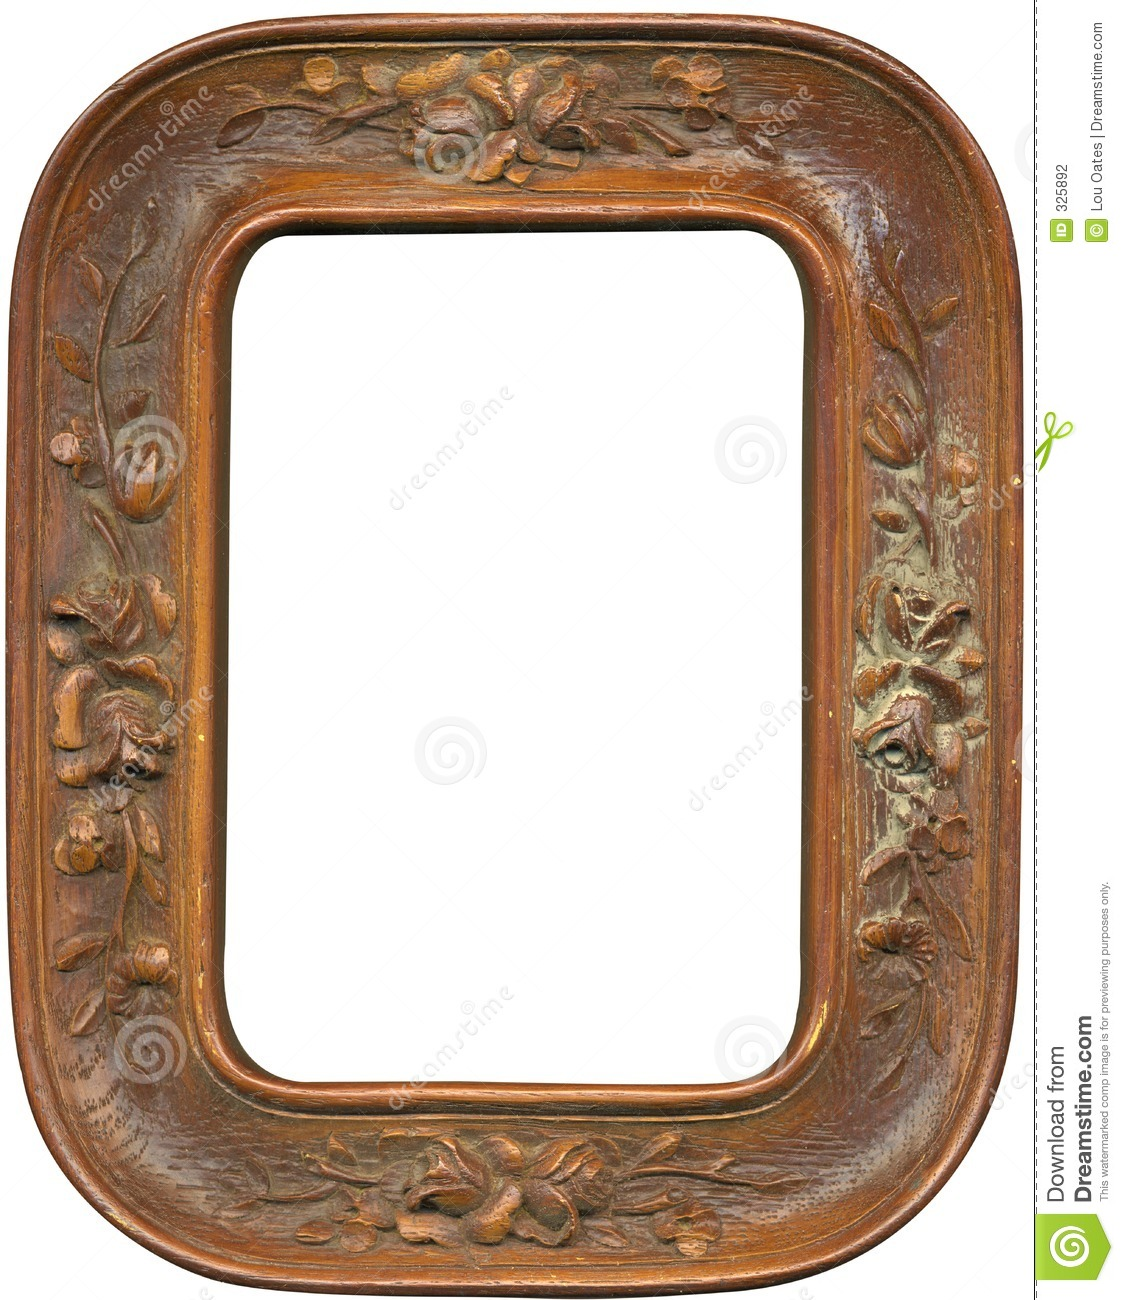 Antique wood frame stock photo. Image of canvas, montage - 325892